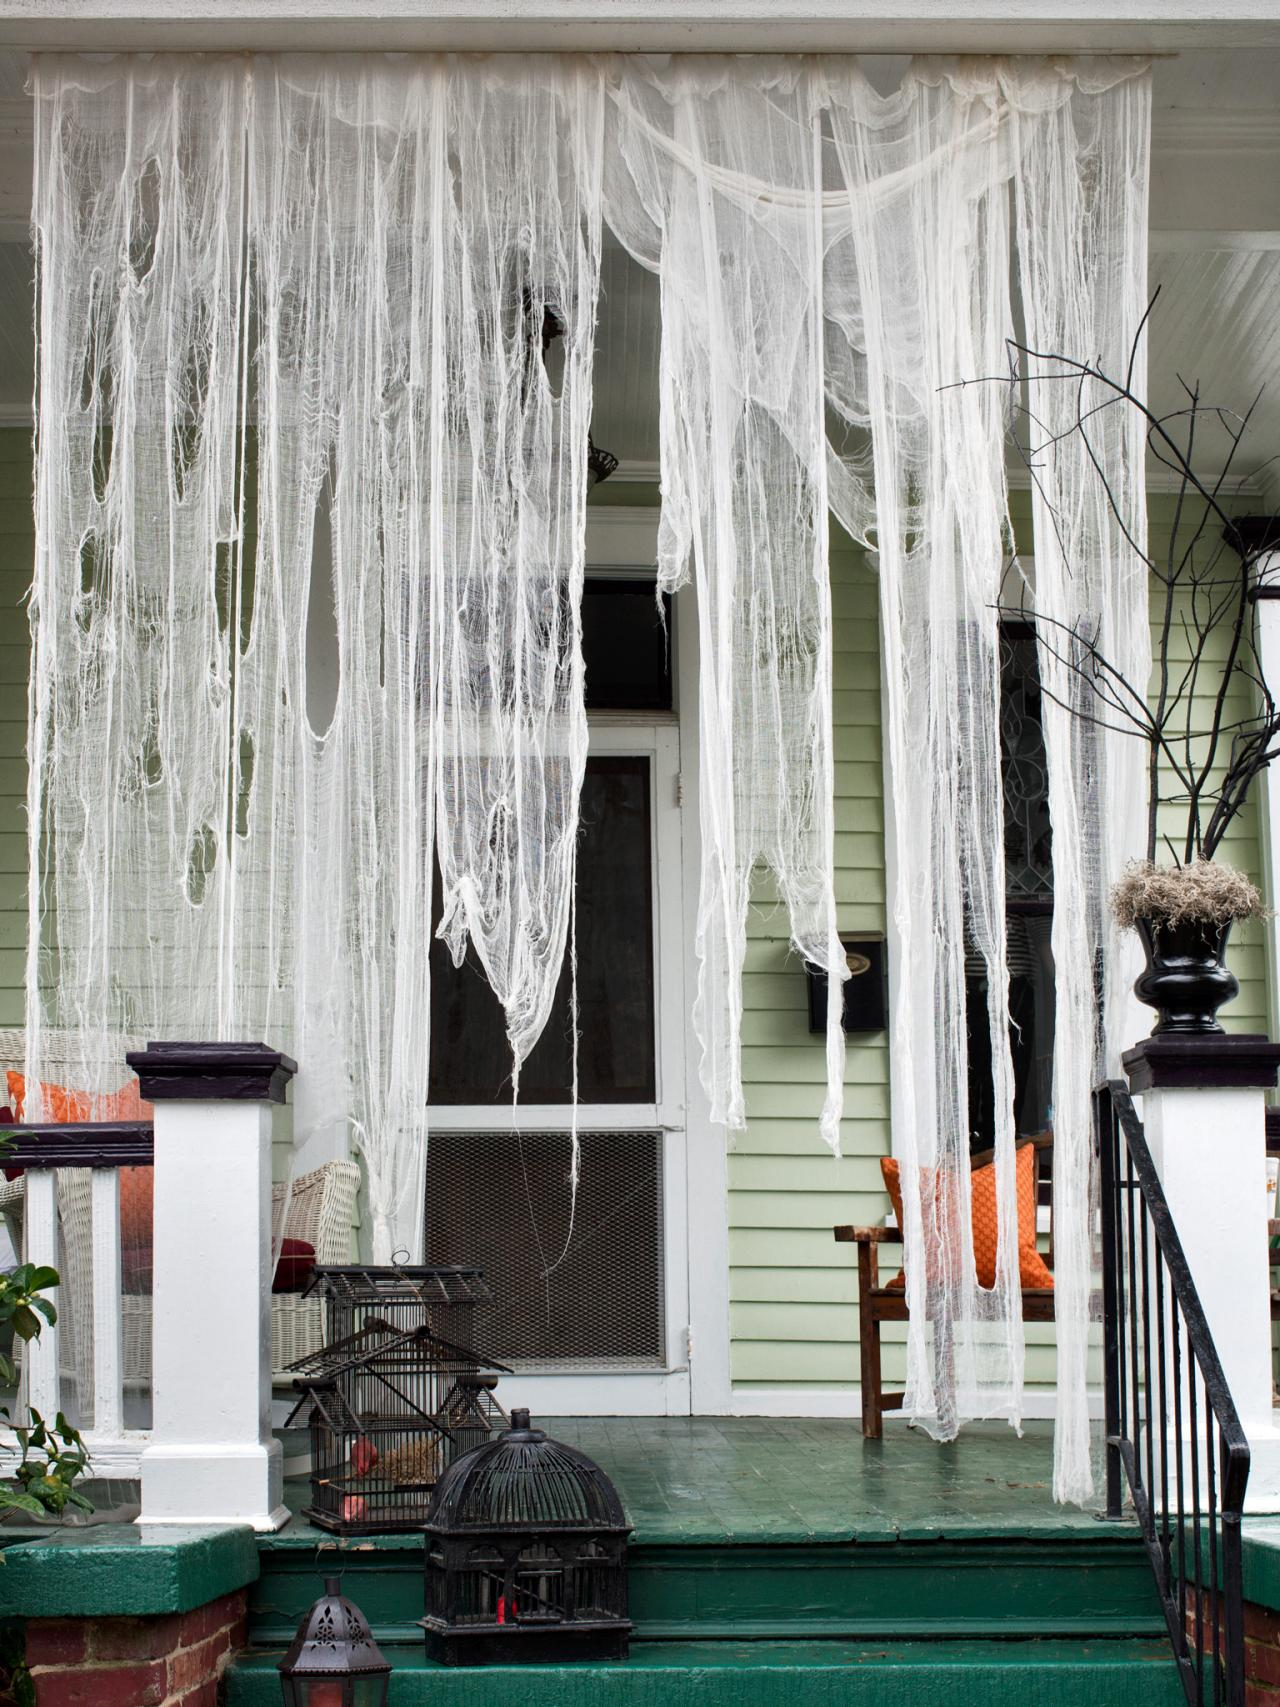 Aug 23, 2021· looking for festive outdoor halloween decorations for a spooky yard? 50 Chilling and Thrilling Halloween Porch Decorations for 2021